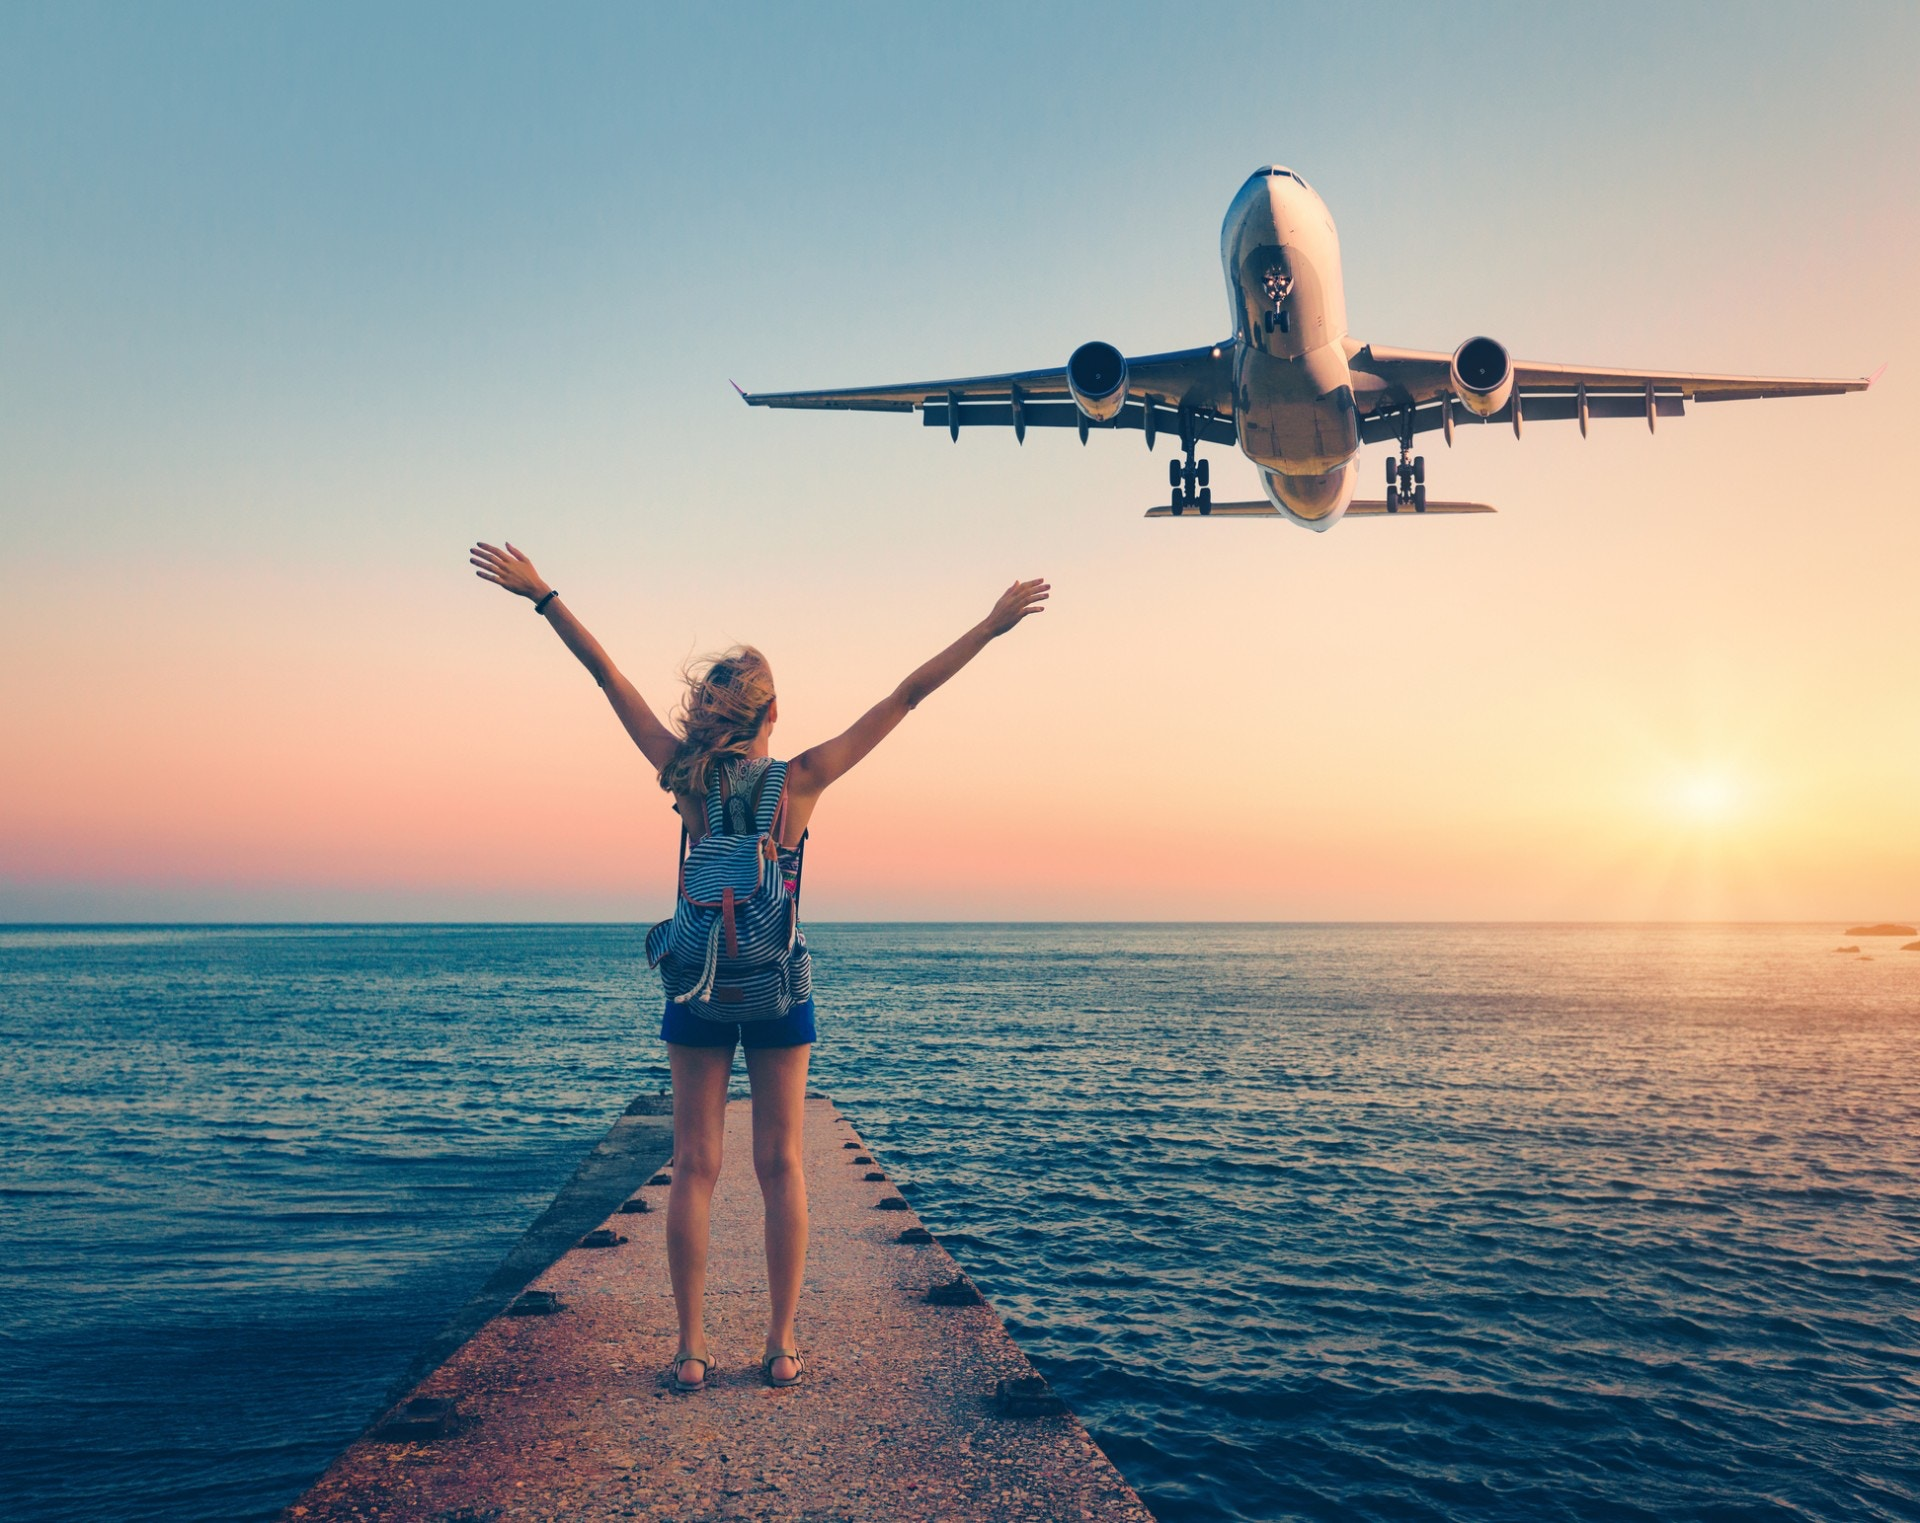 How to Travel Smartly During COVID-19 & Enjoy a Solo Trip